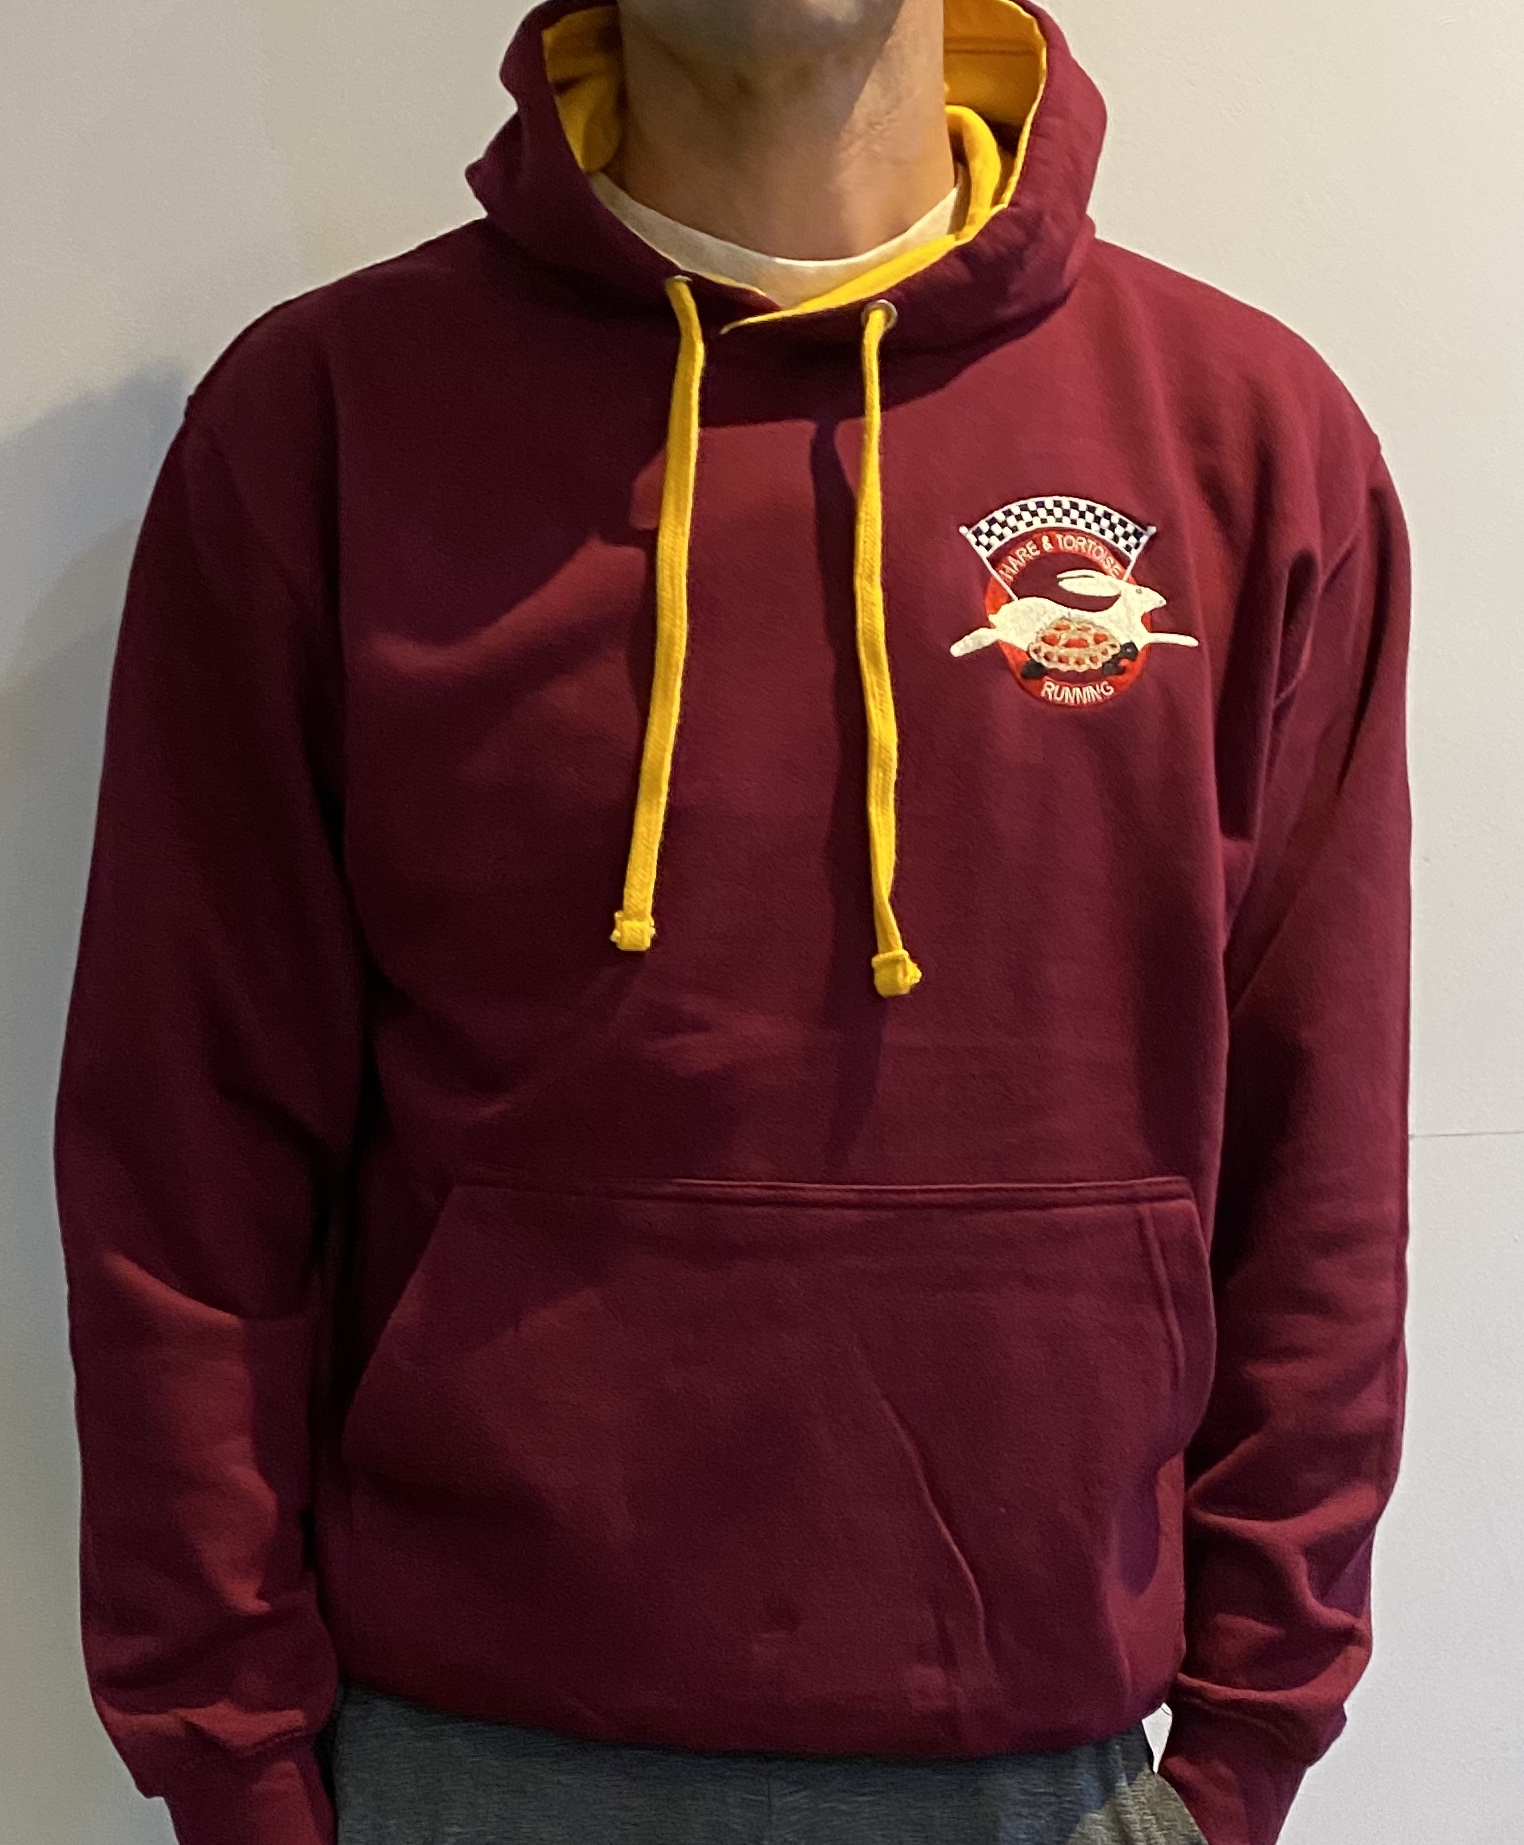 Hare & Tortoise Running Embroidered Hoodie - Burgundy & Gold